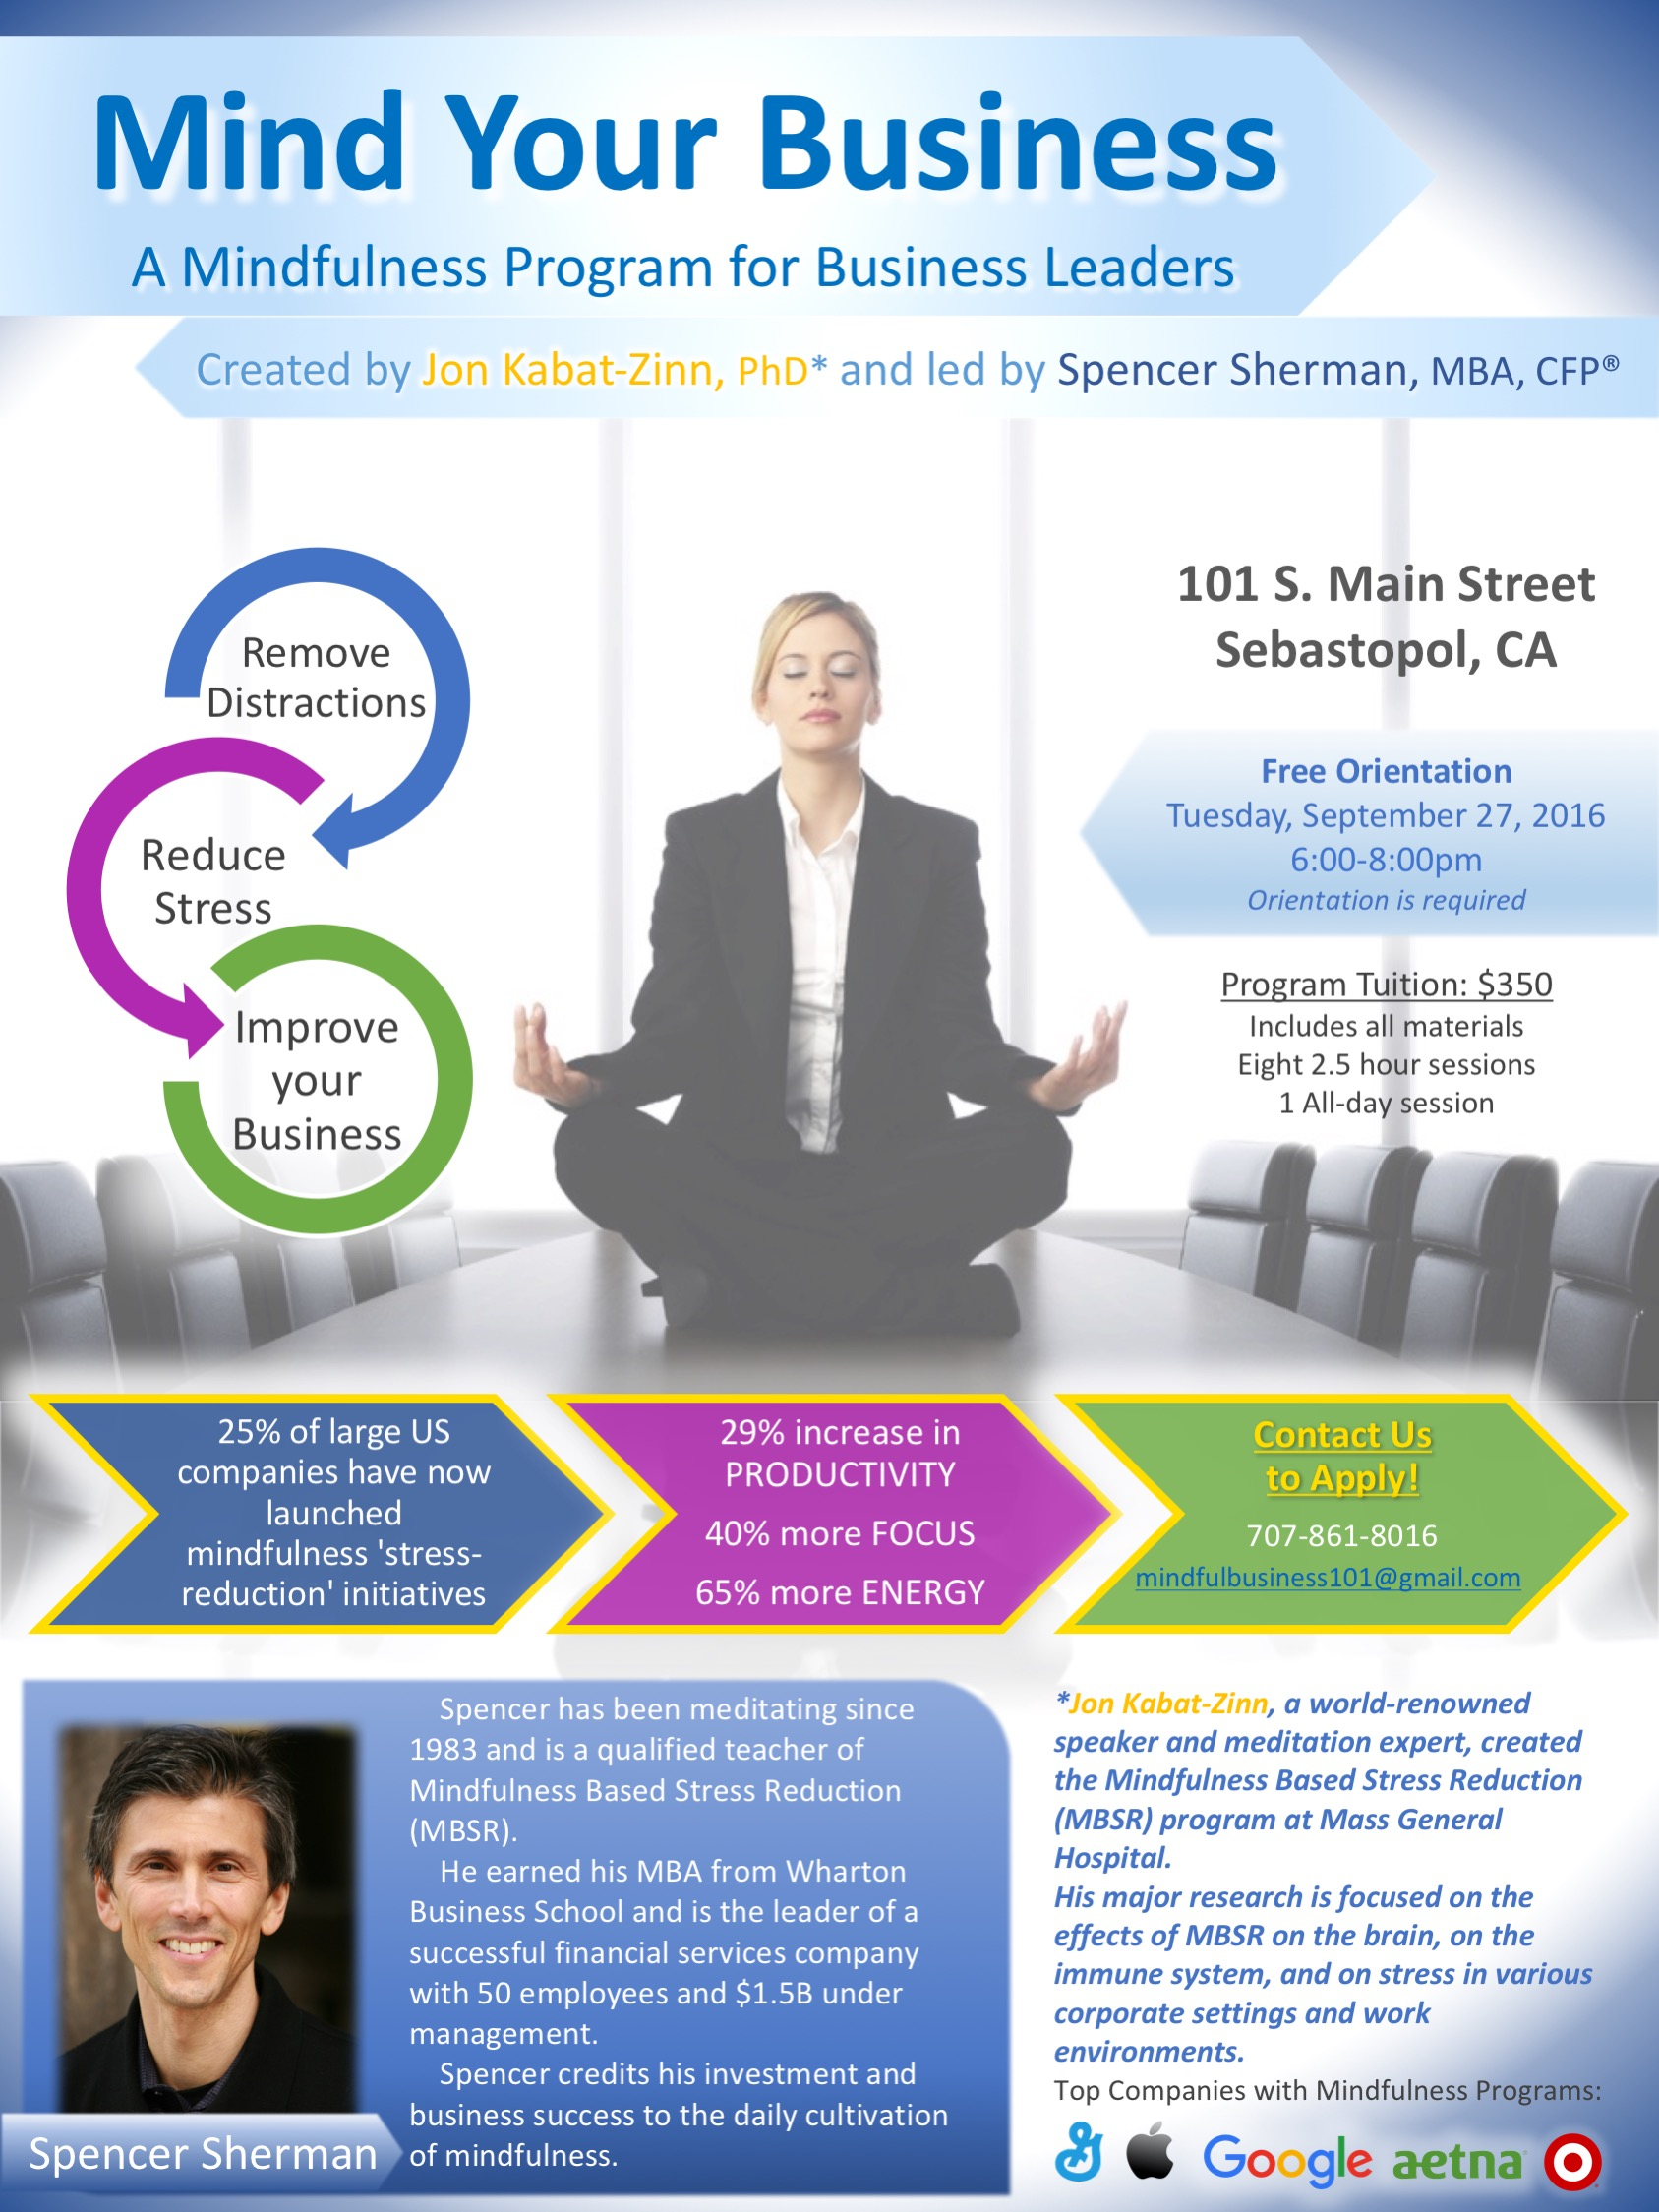 Mind Your Business: A Mindfulness Program For Business Leaders